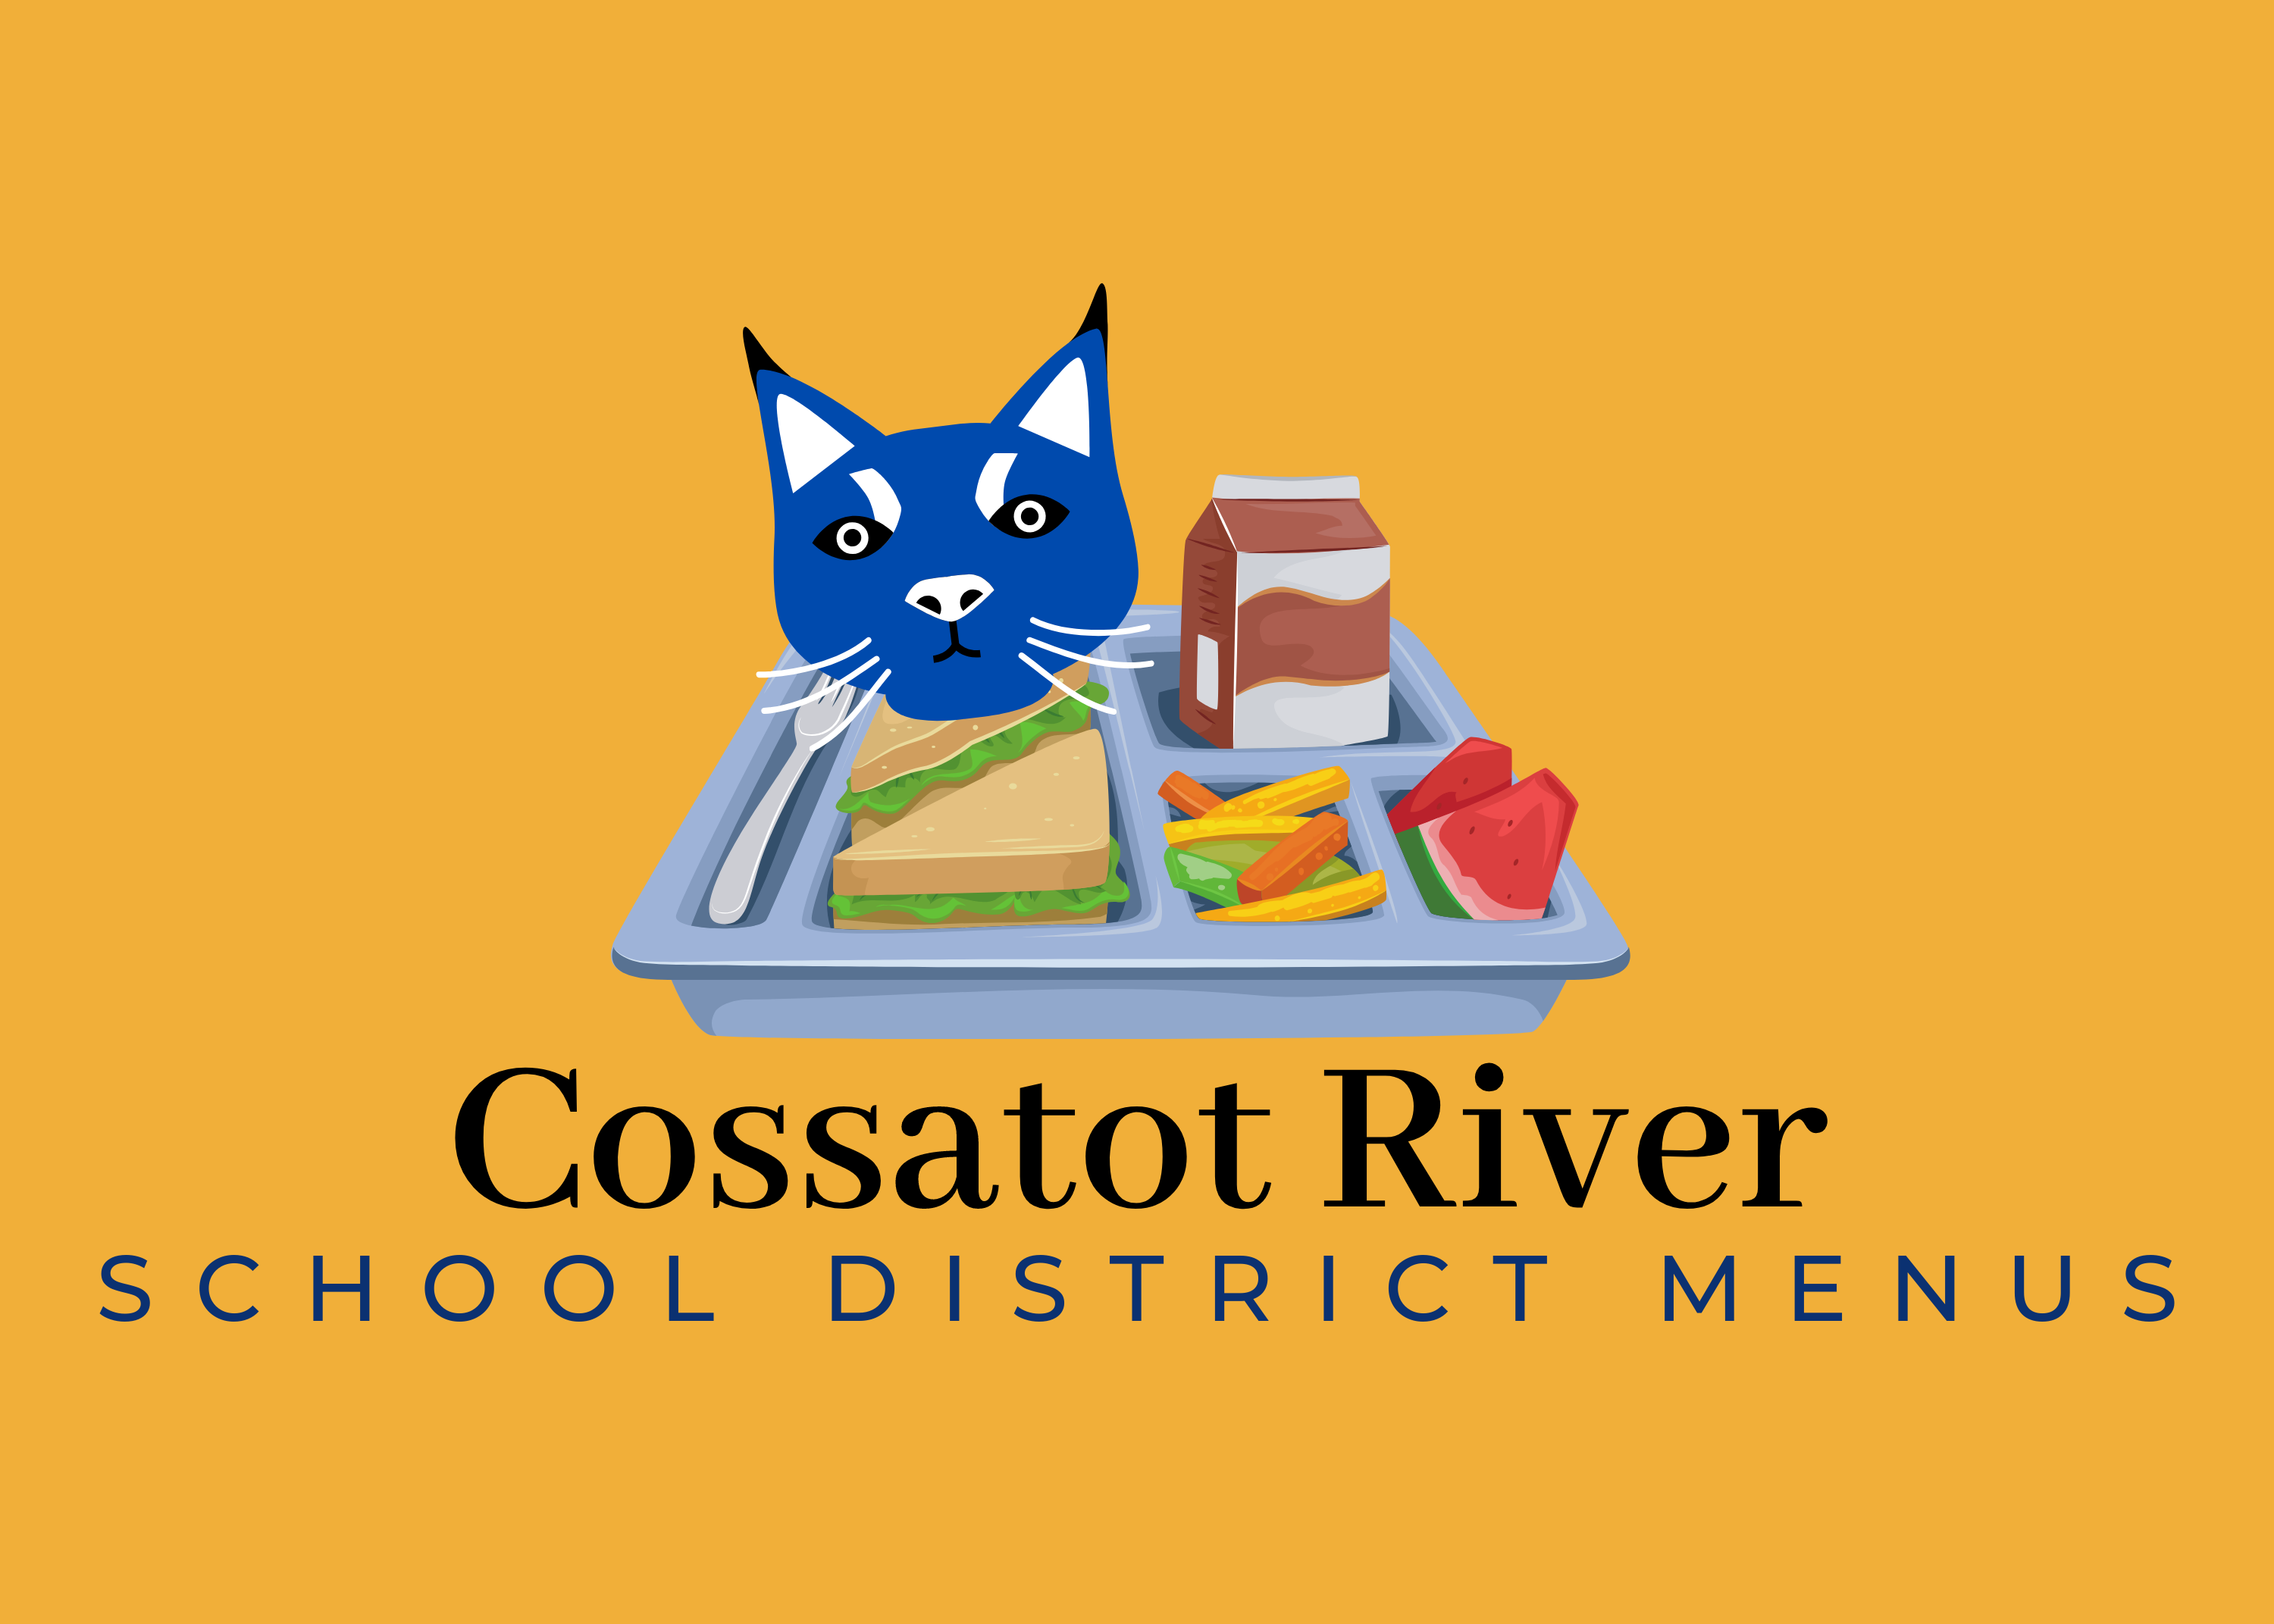 photo of a school lunch that says cossatot river school district menus